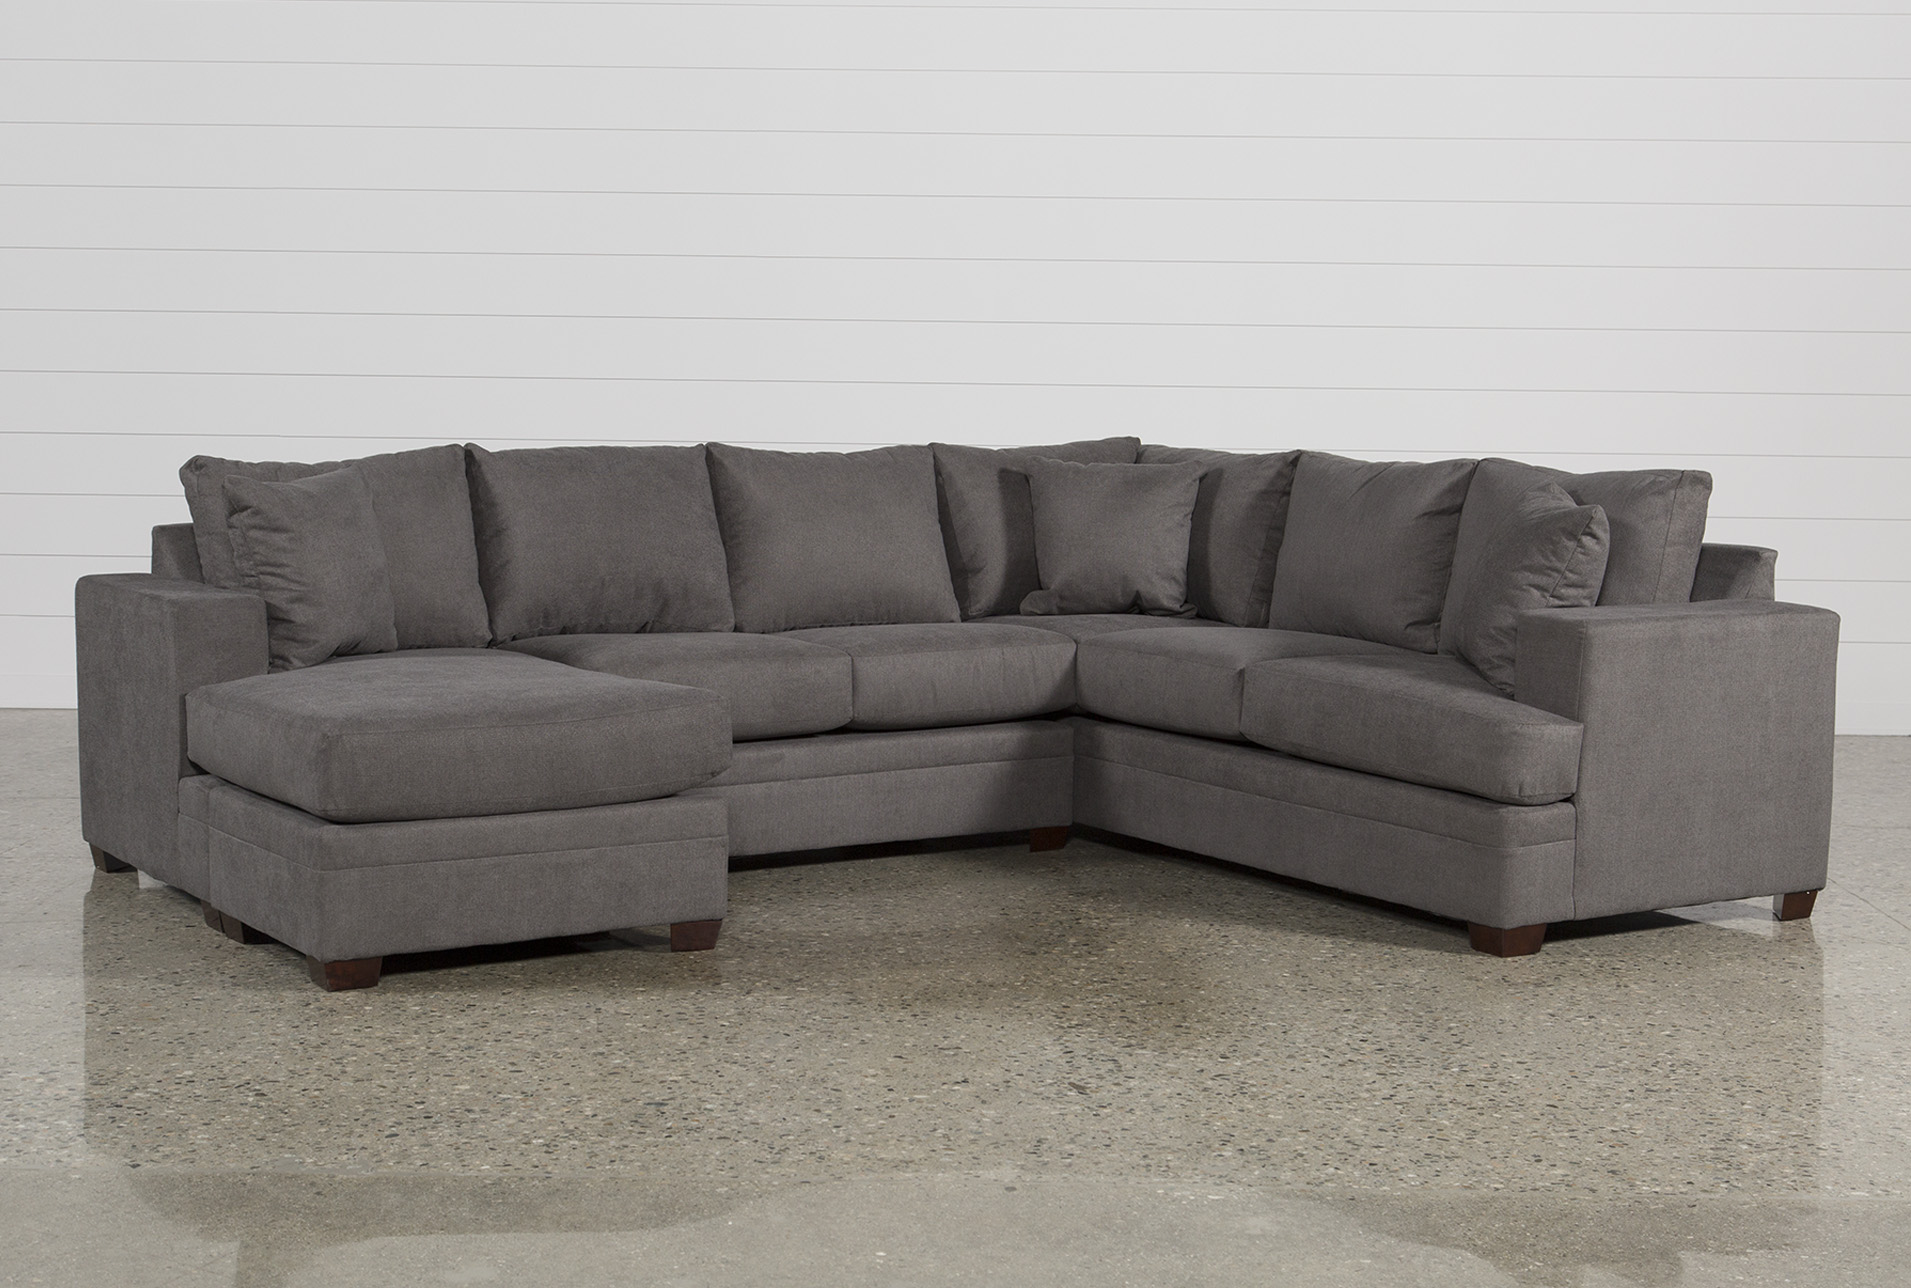 sectionals sectional sofas living spaces rh livingspaces com discount sectional sofa buy sectional sofa near me